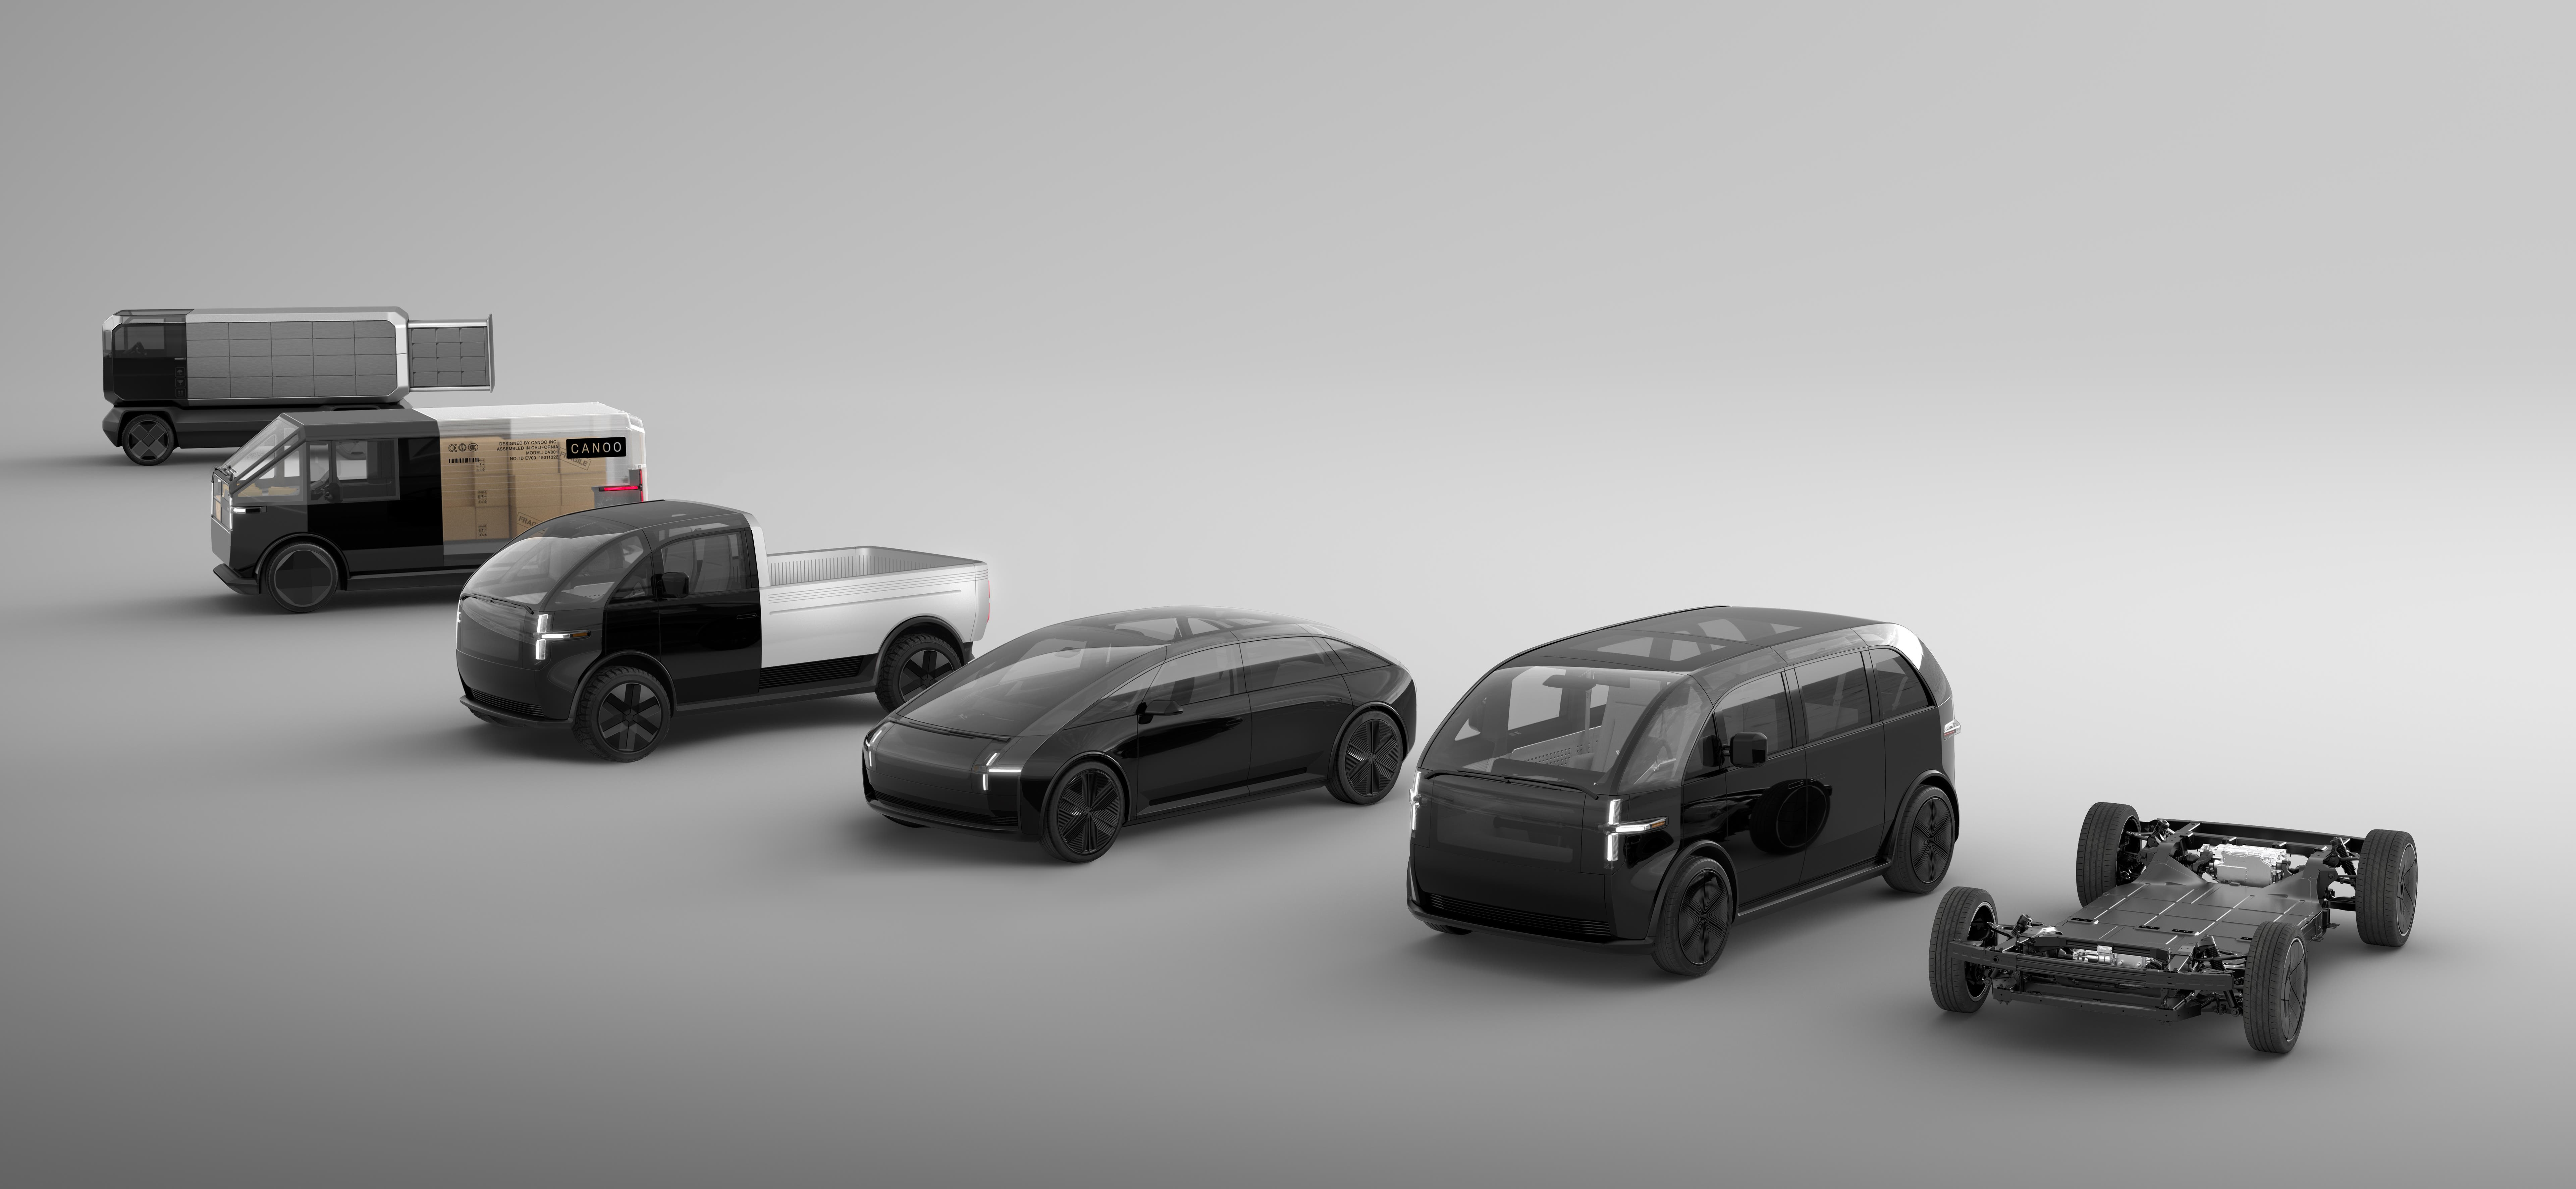 Canoo concept vehicles